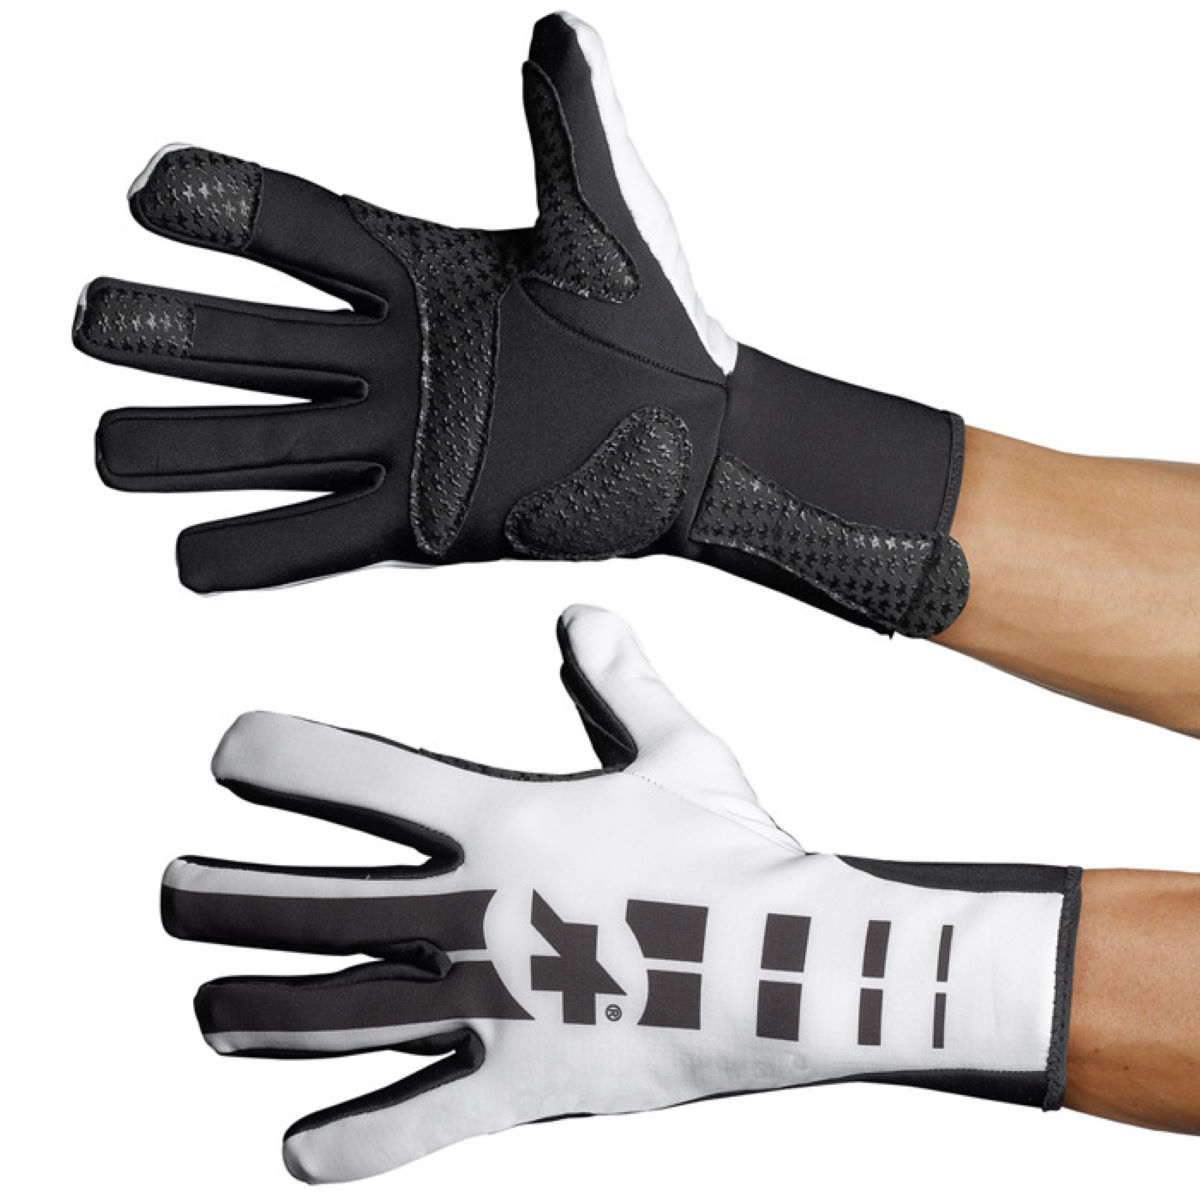 Gants Assos earlyWinter s7 - Small White Panther Gants d'hiver